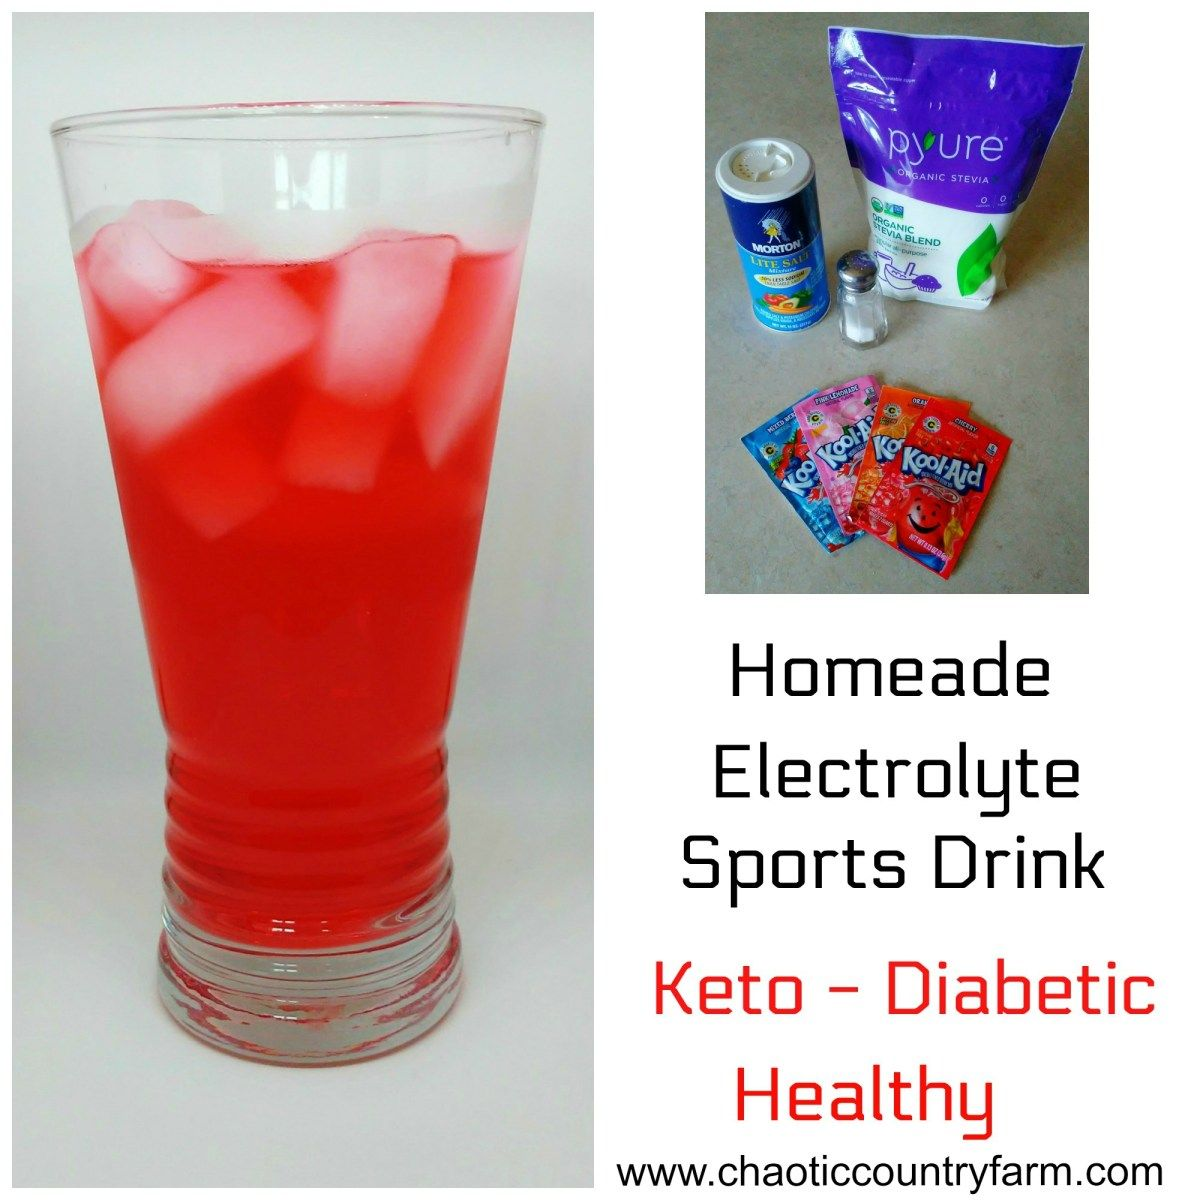 Healthy Homemade Electrolyte Sports Drink Keto Diabetic Friendly Chaotic Country Farm Homemade Electrolyte Drink Sports Drink Diabetic Friendly